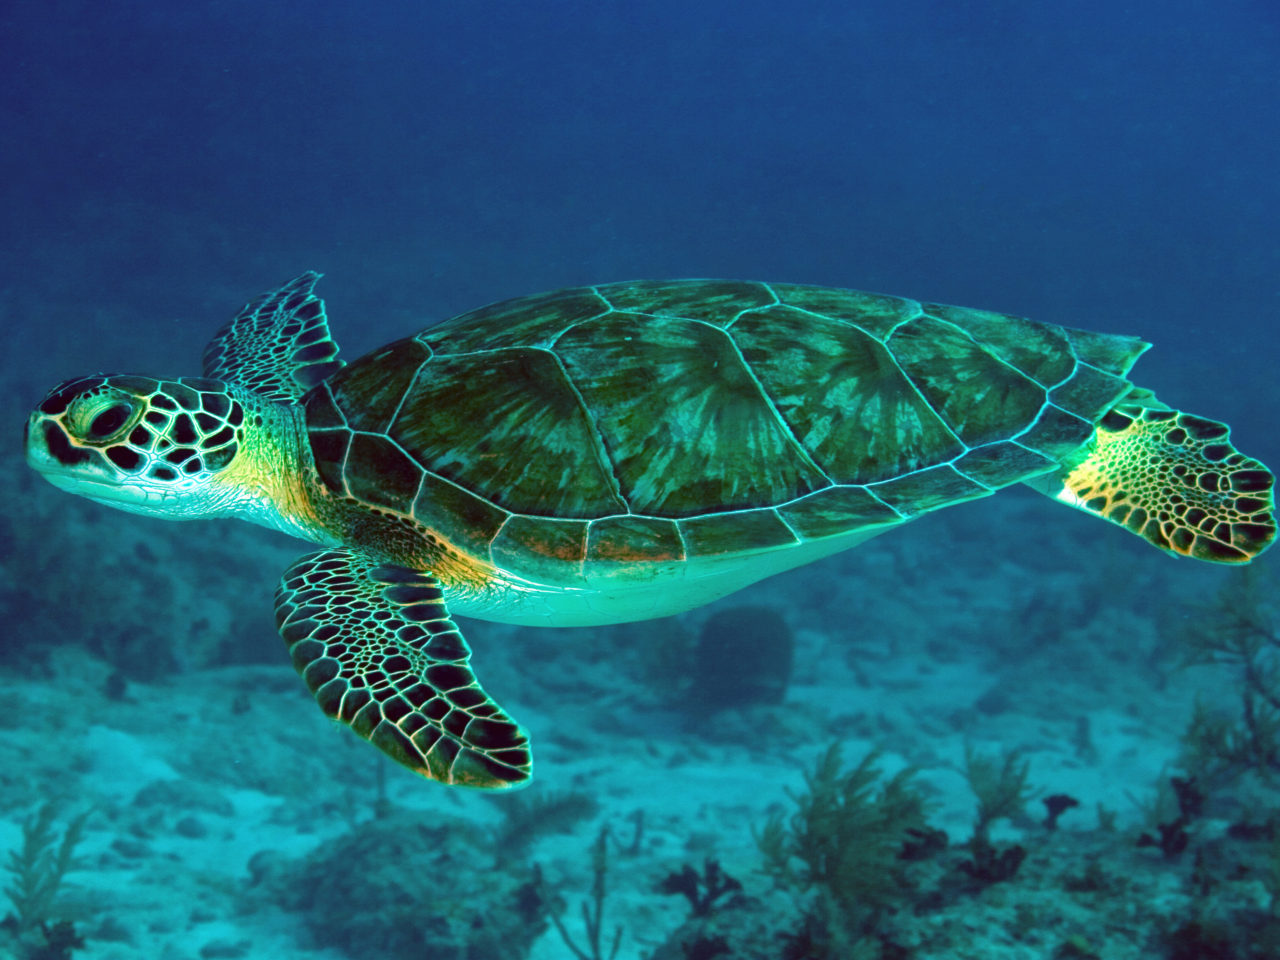 Iphone X Wallpaper Coral Reef Green Sea Turtle Underwater Scene Hd Wallpapers For Mobile